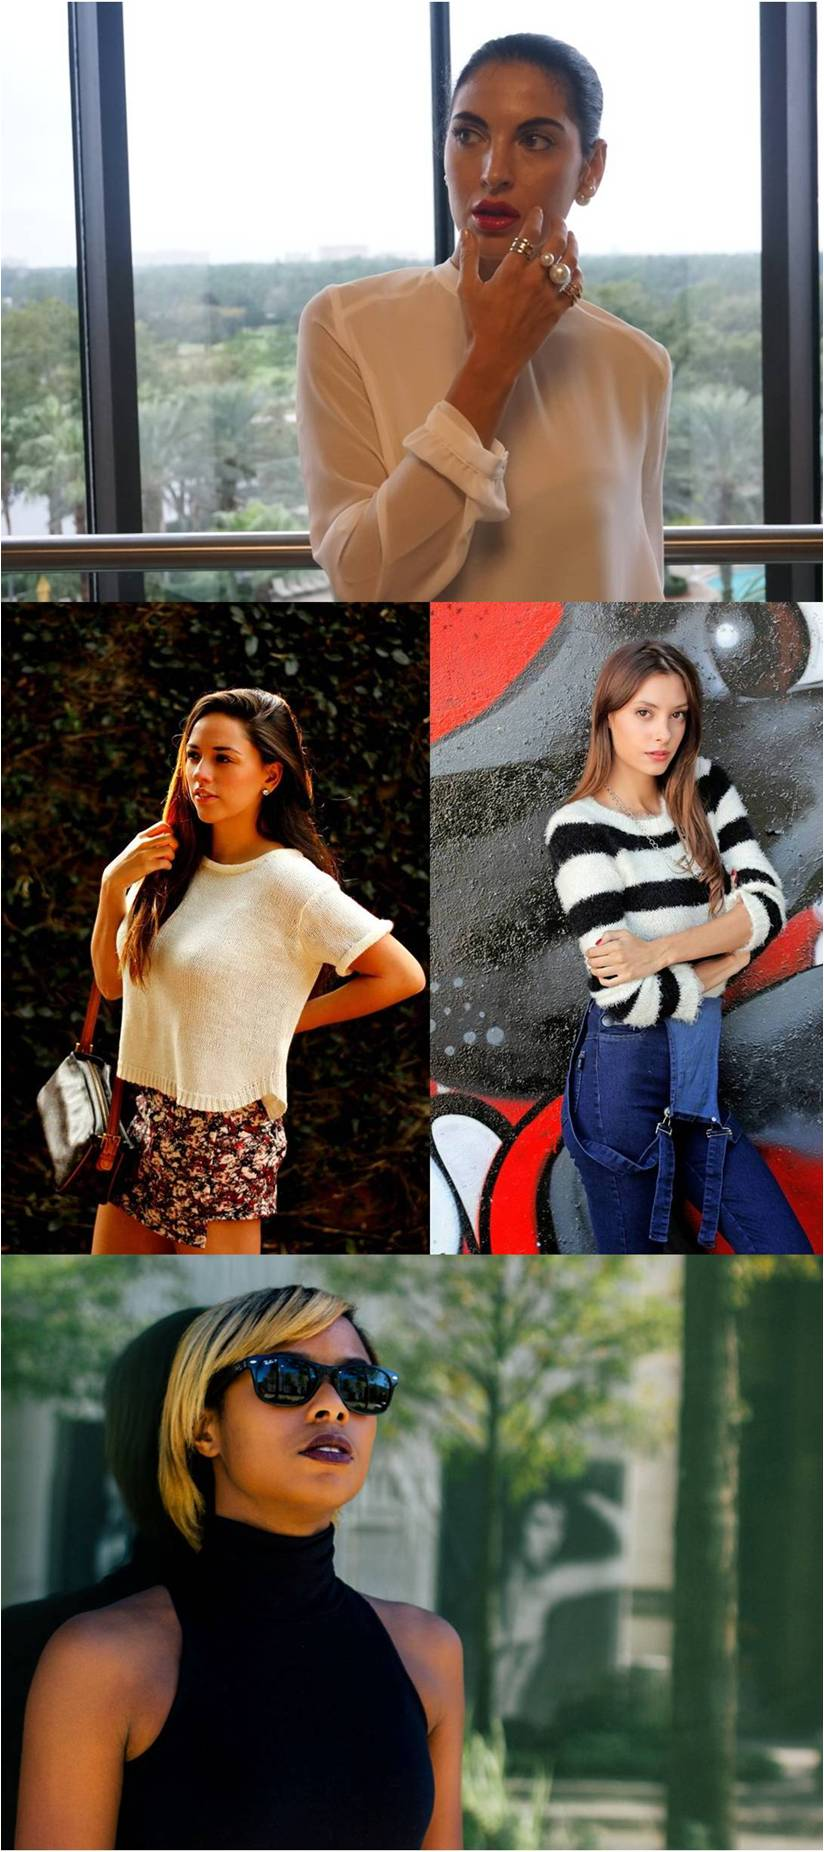 mens fashion from women perspective